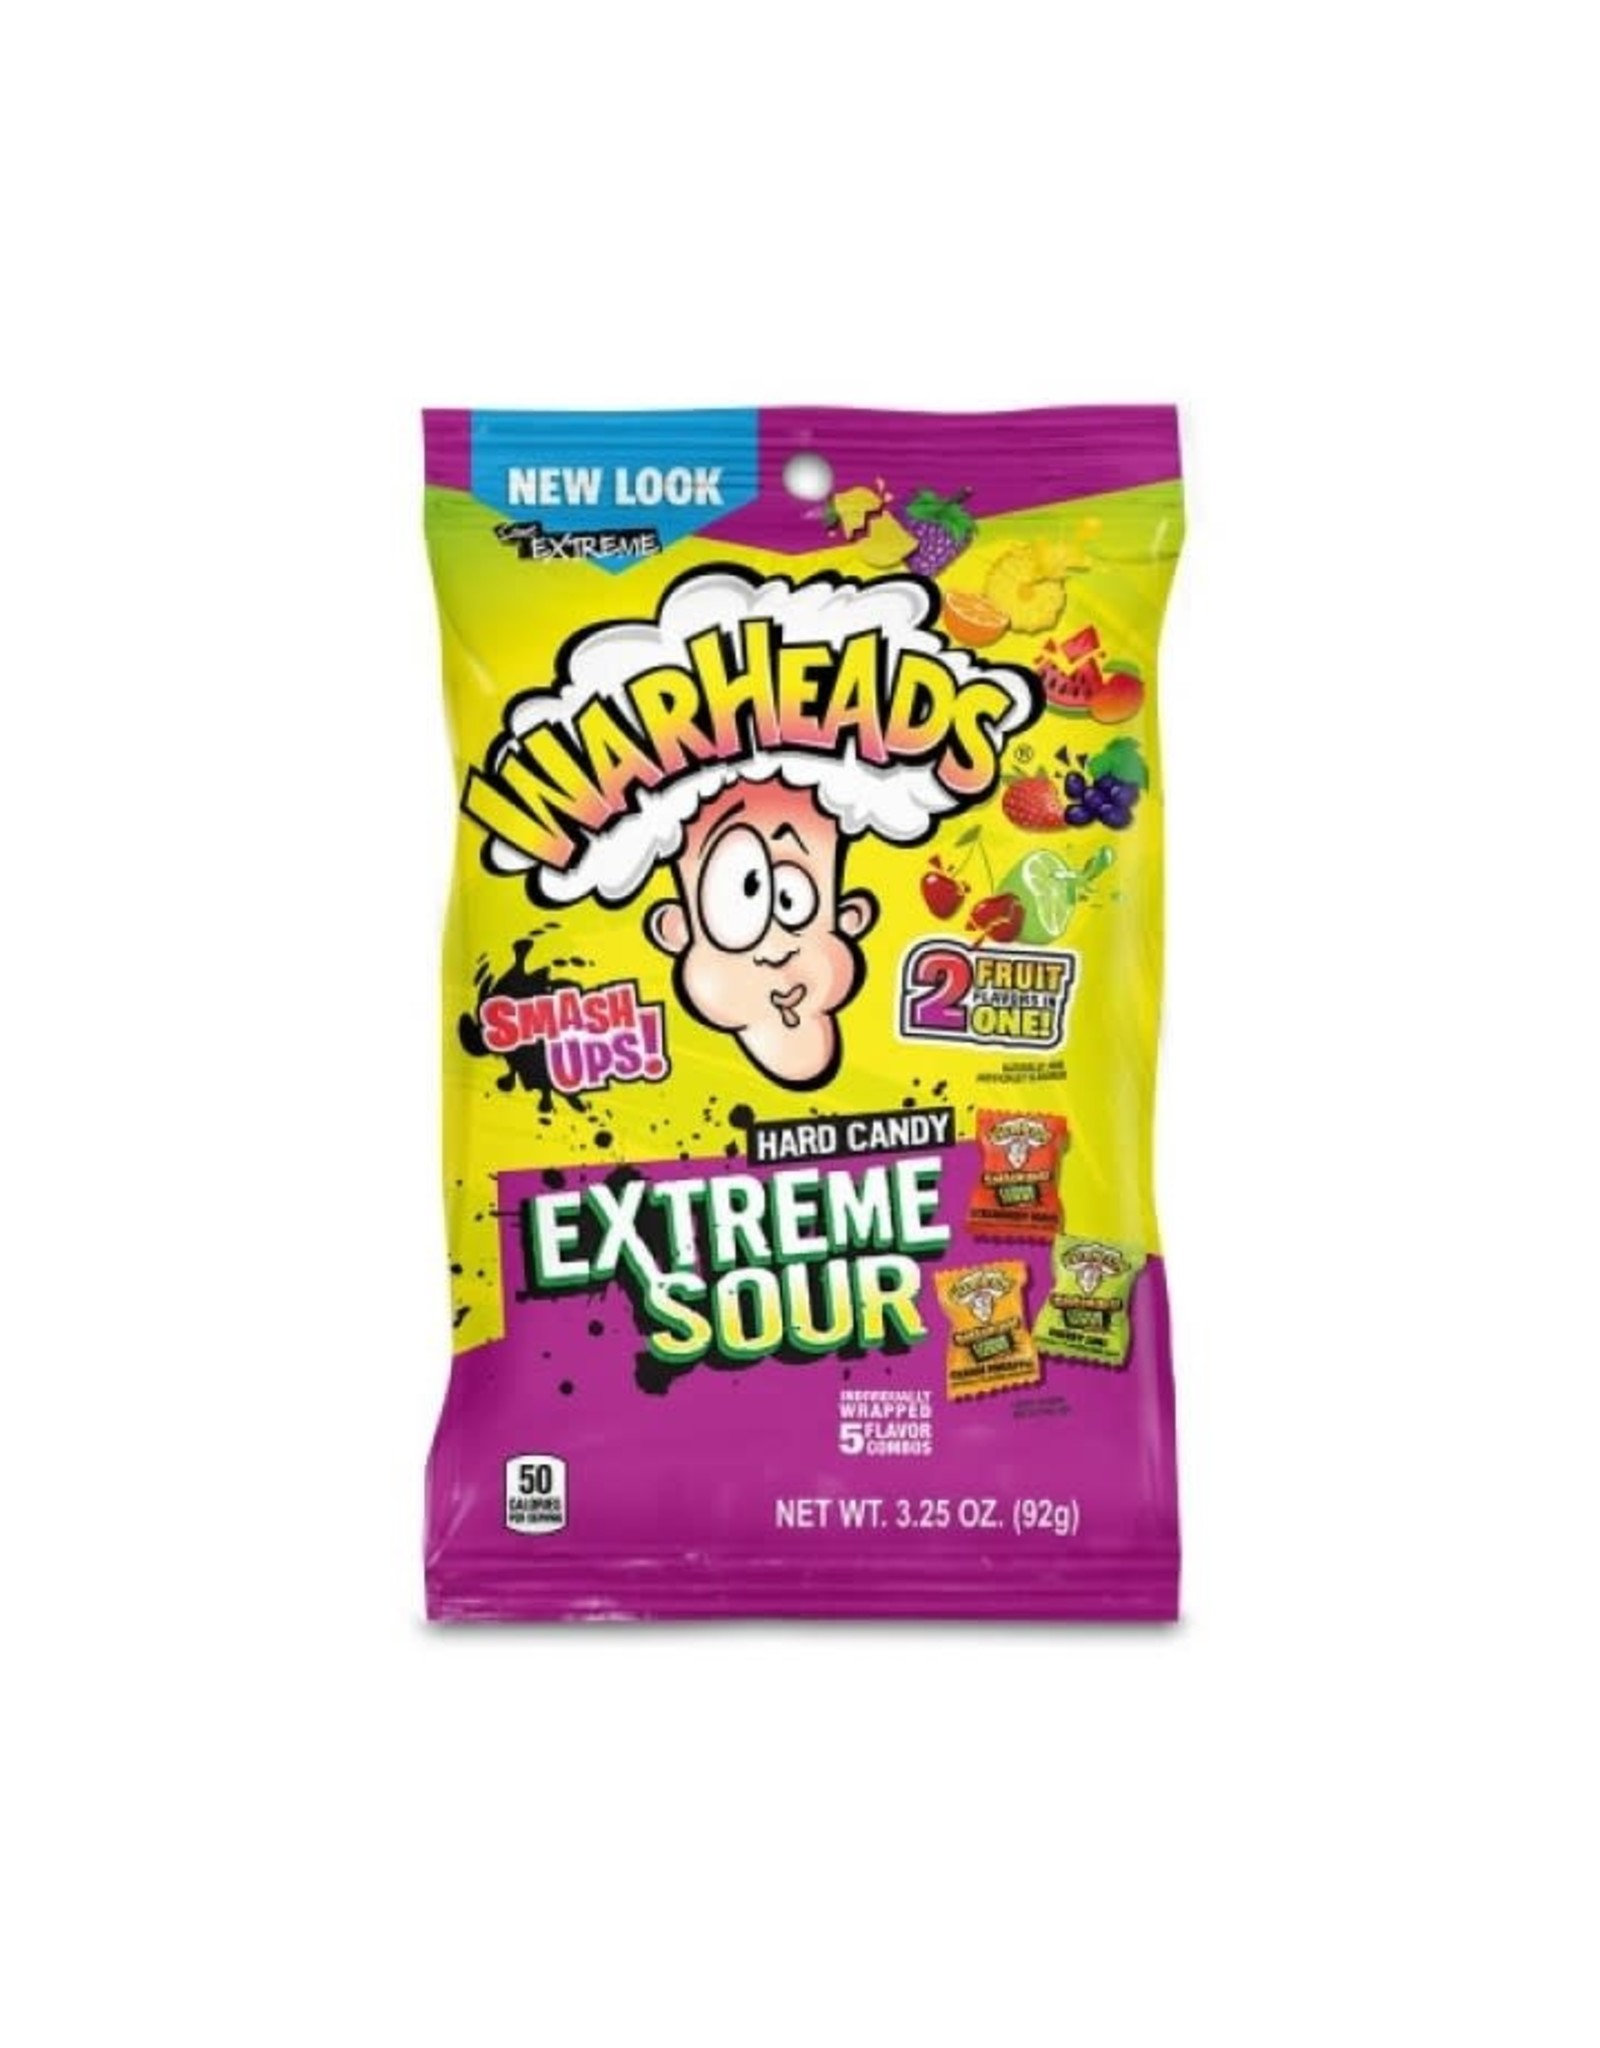 Warheads - Extreme Sour Hard Candy - 56g